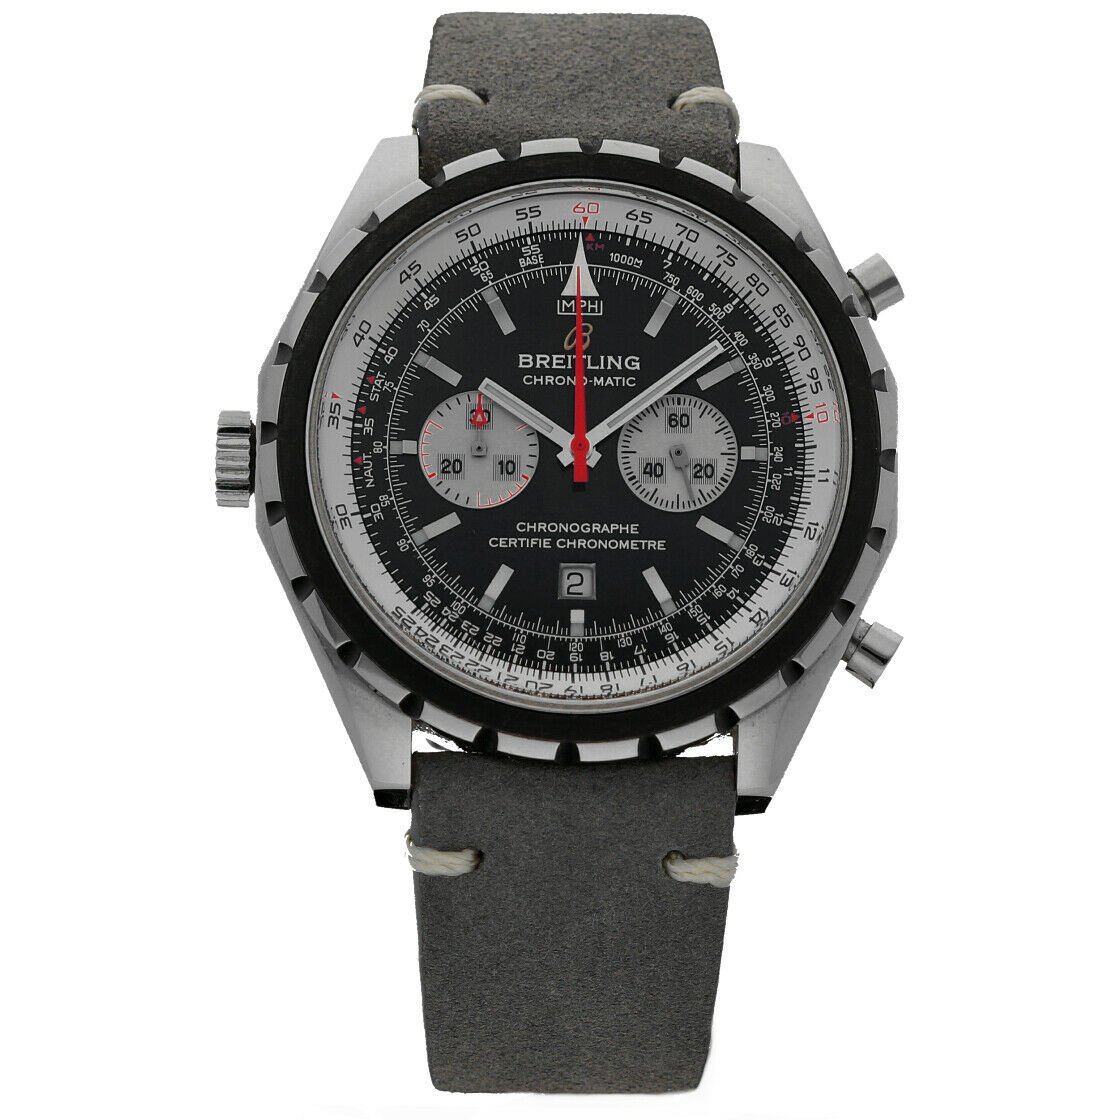 Breitling A41360 Chronomatic Chrono Leather Automatic Mens Watch BoxPapers 124132399902